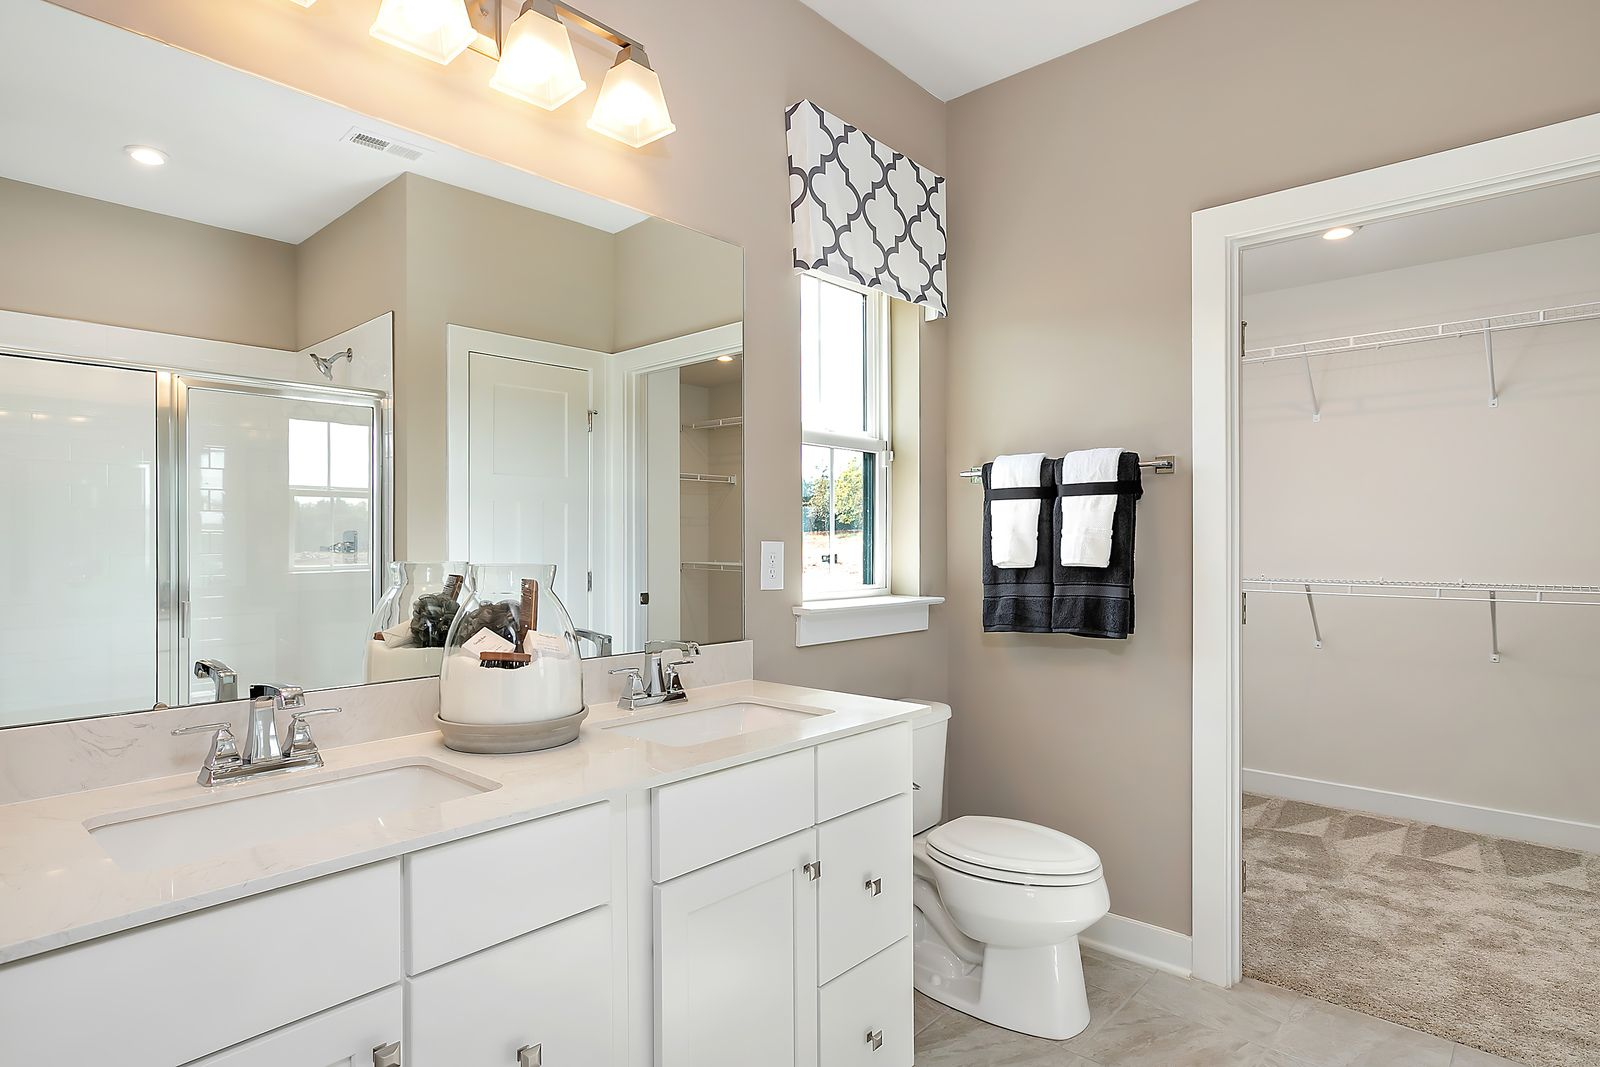 Bathroom featured in the Bramante 2-Story By Ryan Homes in Charlotte, NC